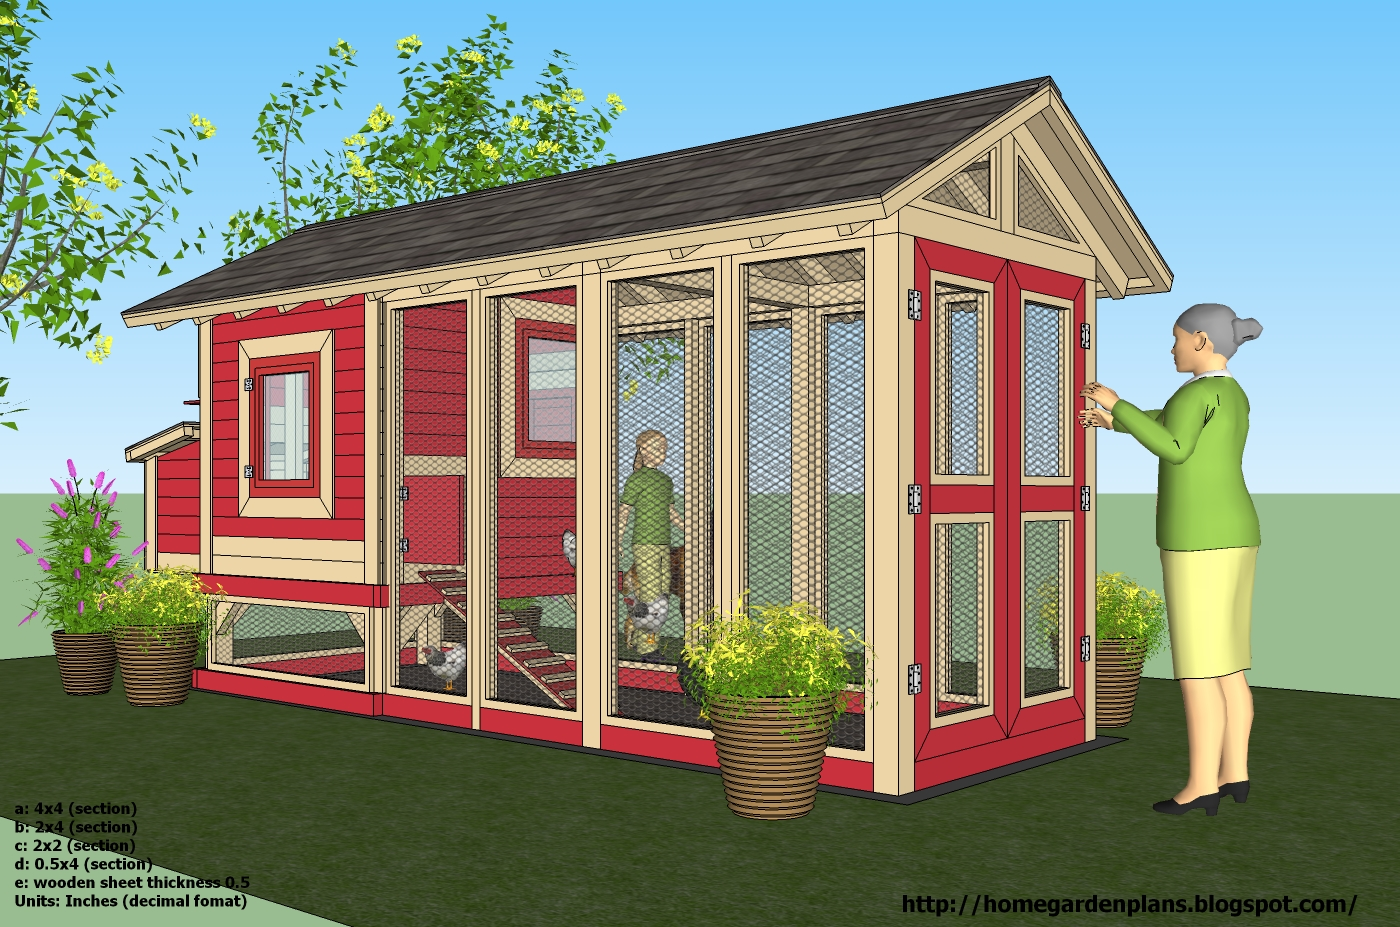 Home garden plans m102 chicken coop plans how to for Plans for chicken coops